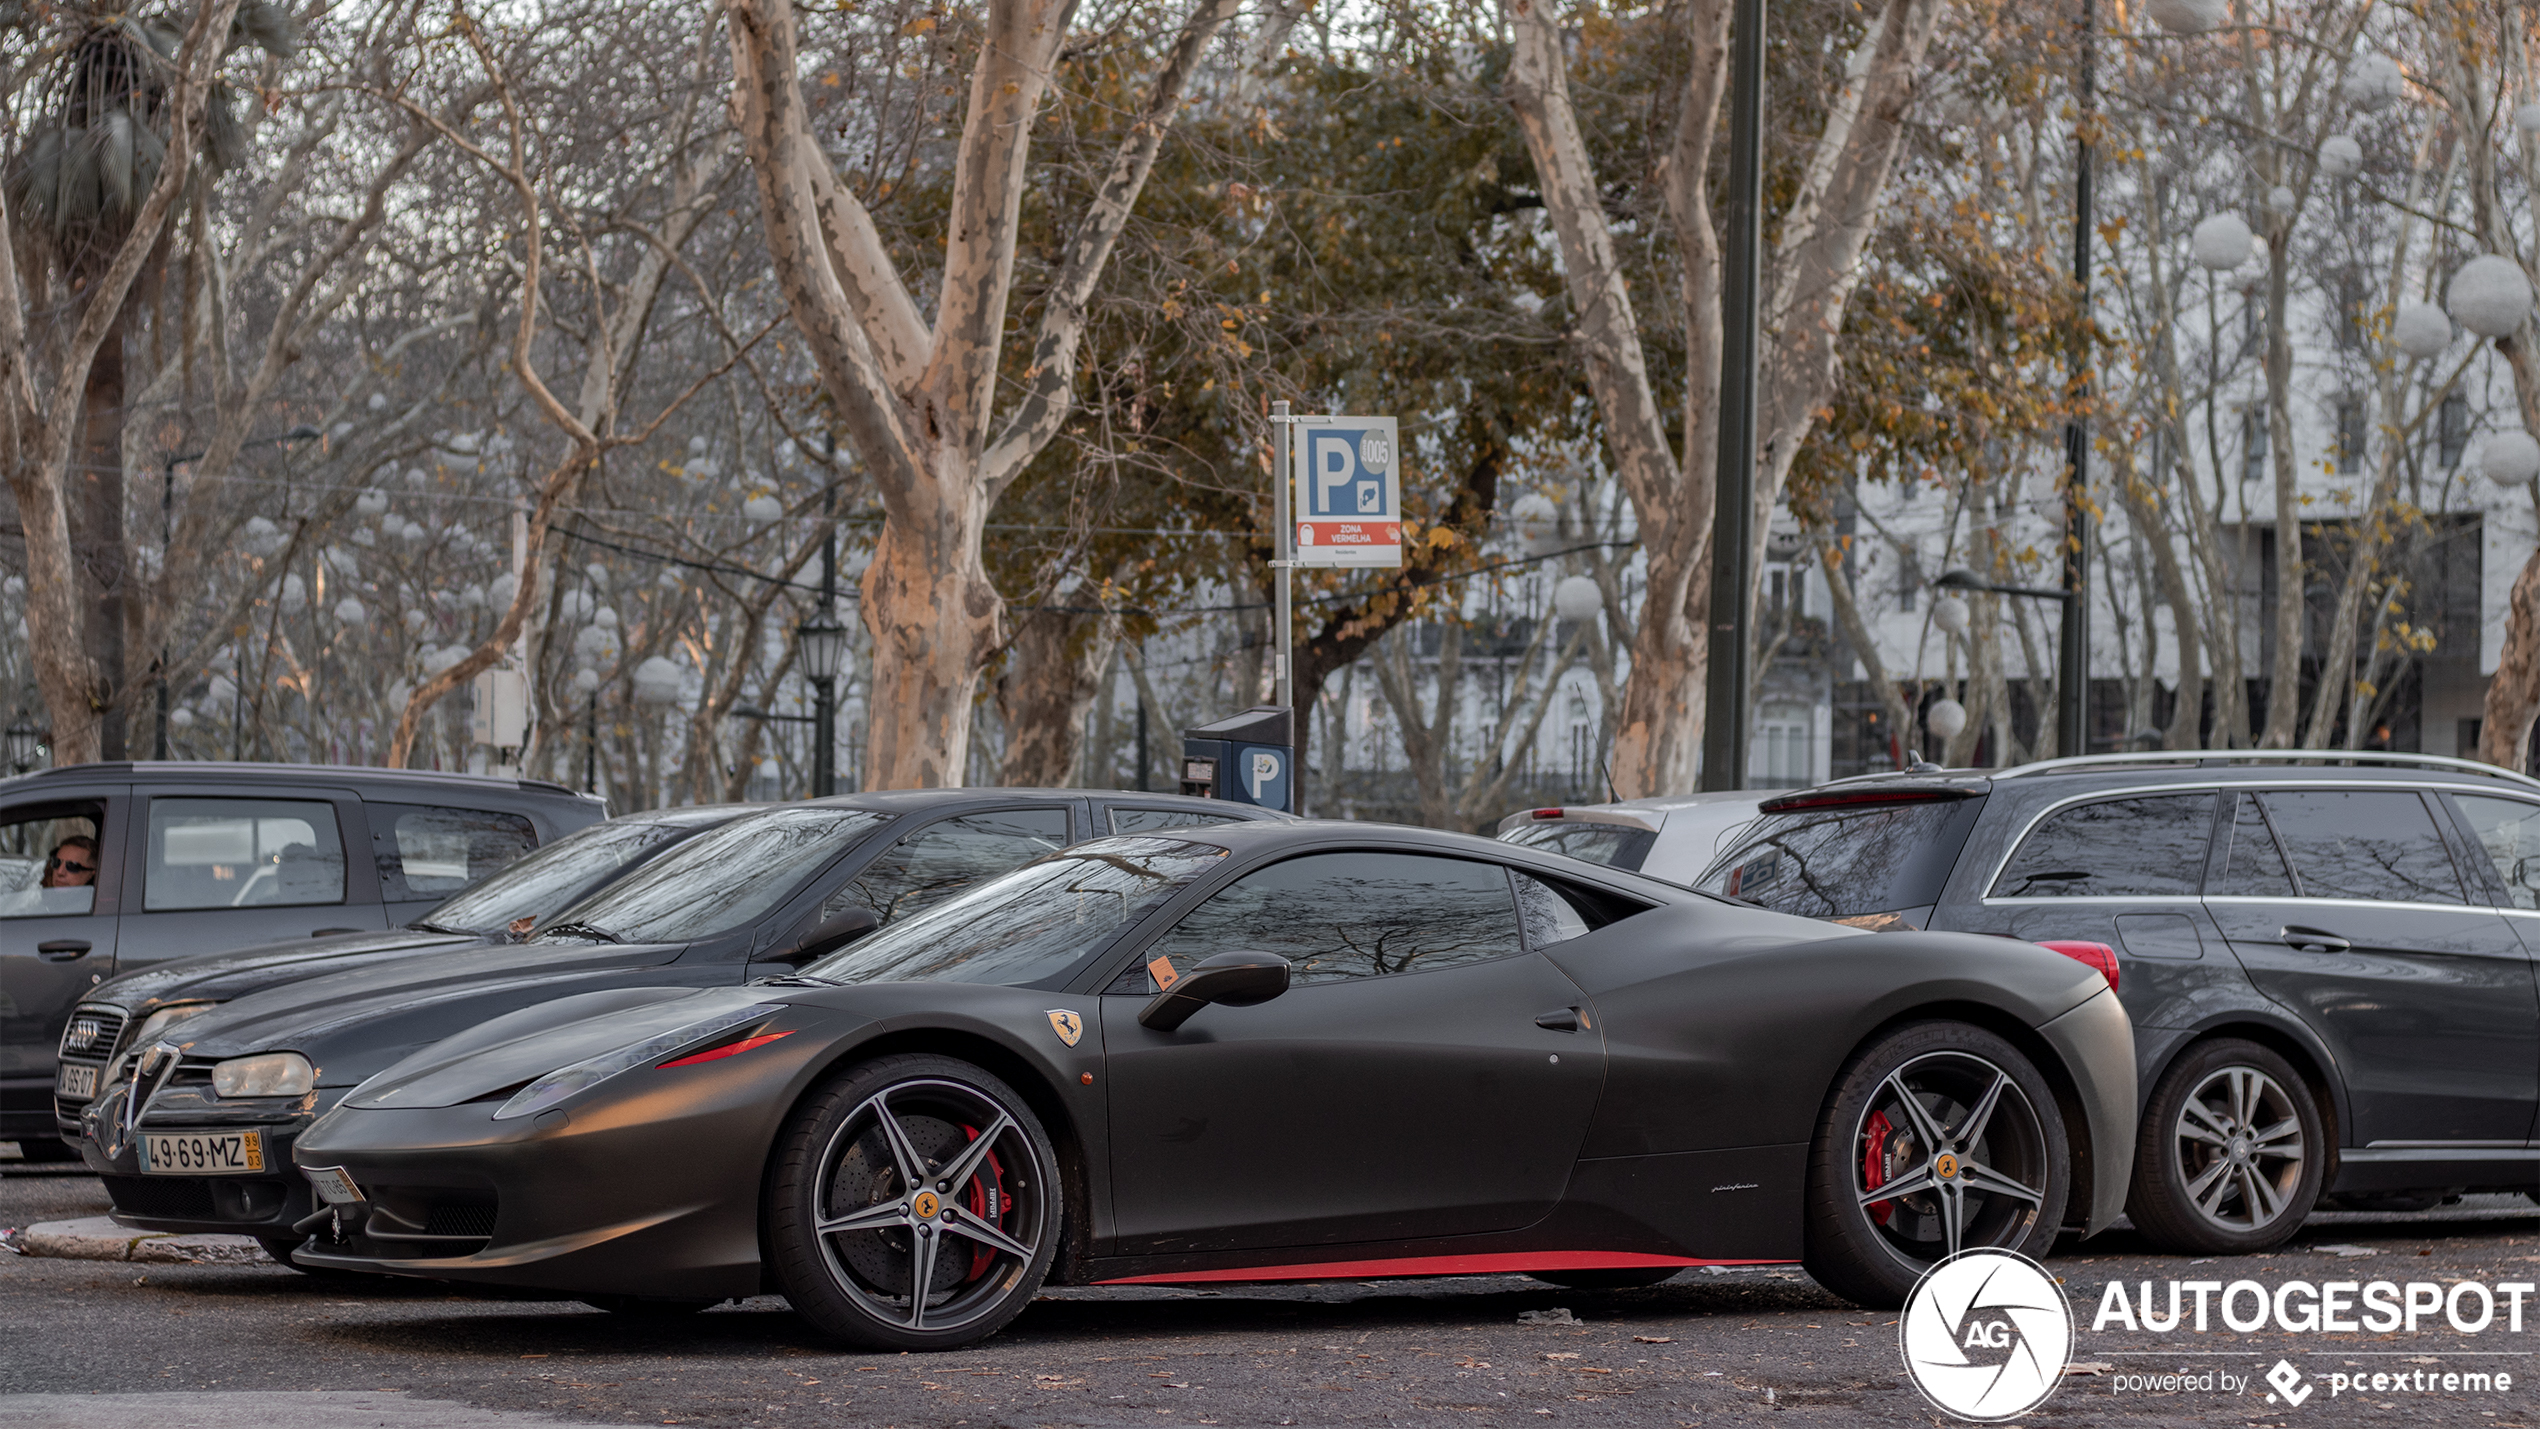 Ferrari 458 Italia 28 December 2019 Autogespot